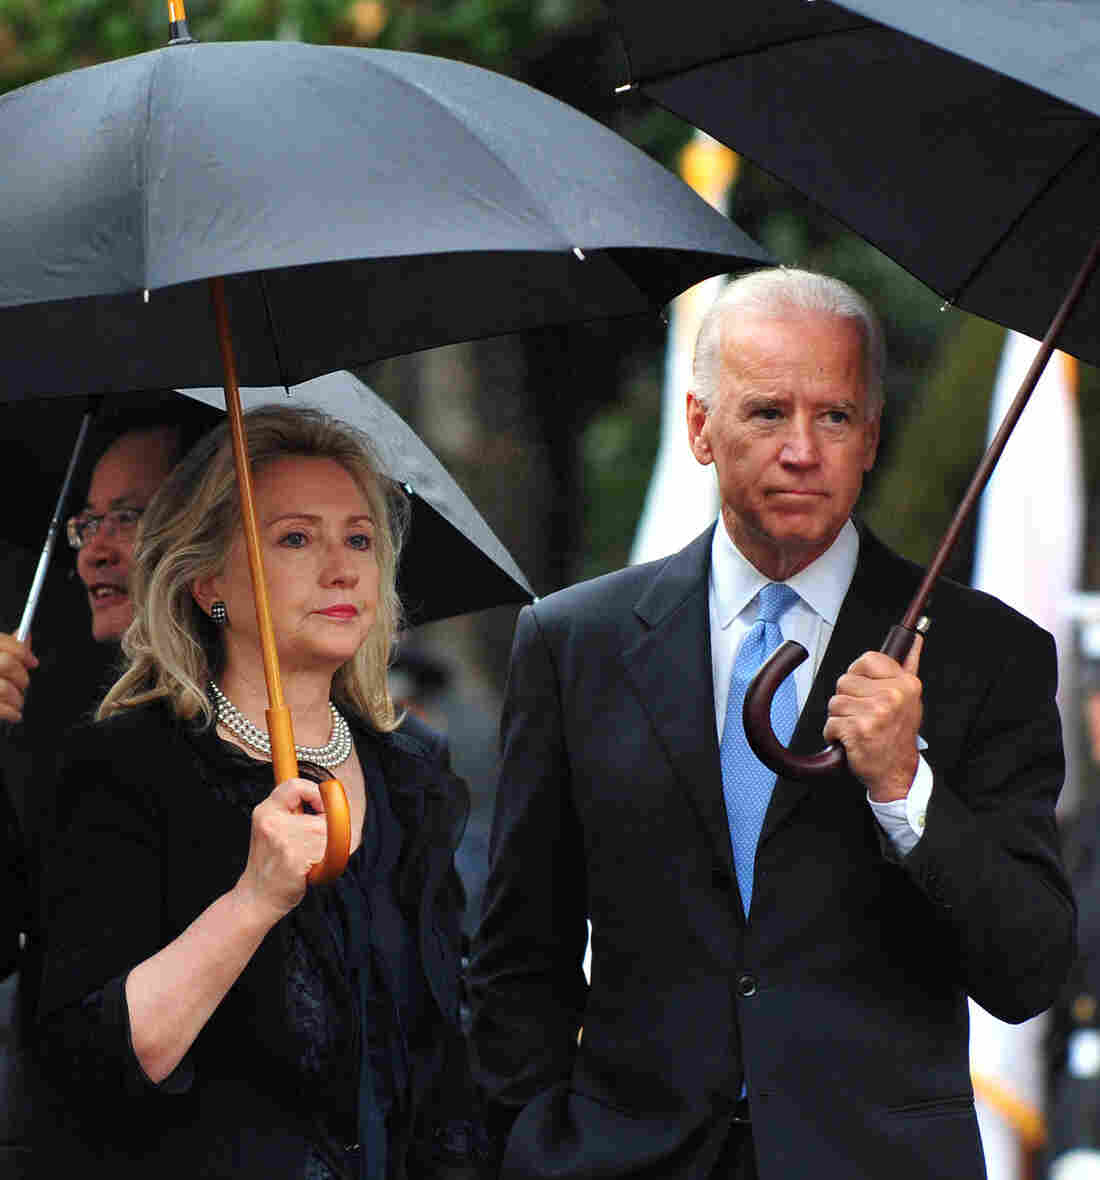 Then-Secretary of State Hillary Clinton and Vice President Biden at a White House event in October 2011. A new book says President Obama's aides were then studying whether to replace Biden with the former first lady on the 2012 ticket.